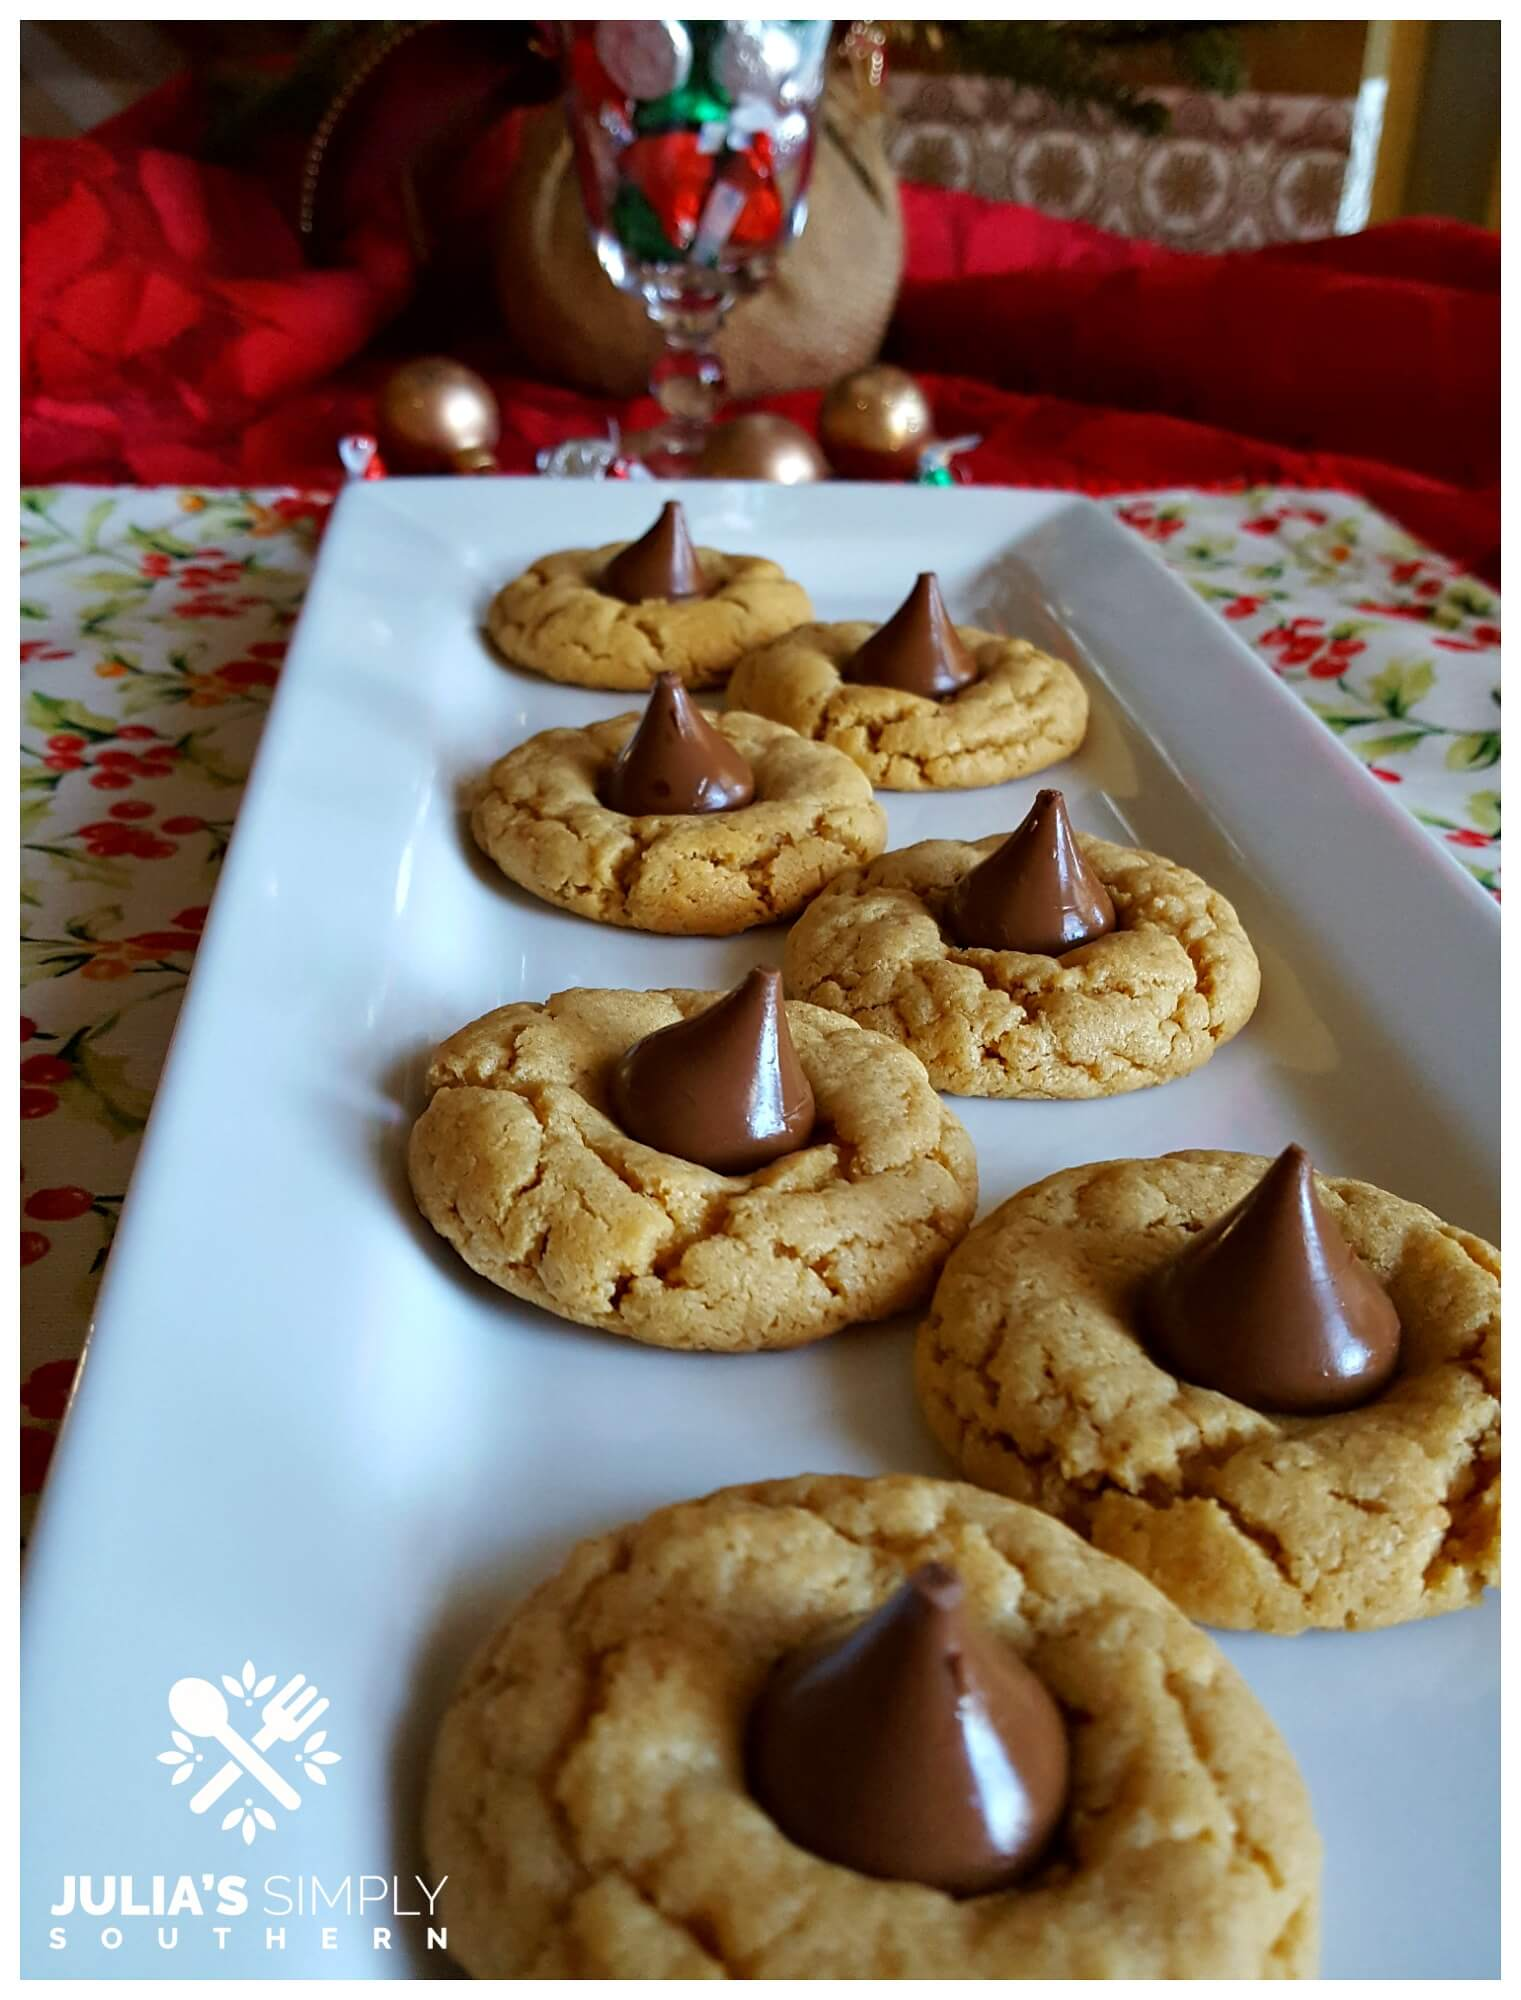 White platter with delicious Christmas cookies - peanut butter blossoms